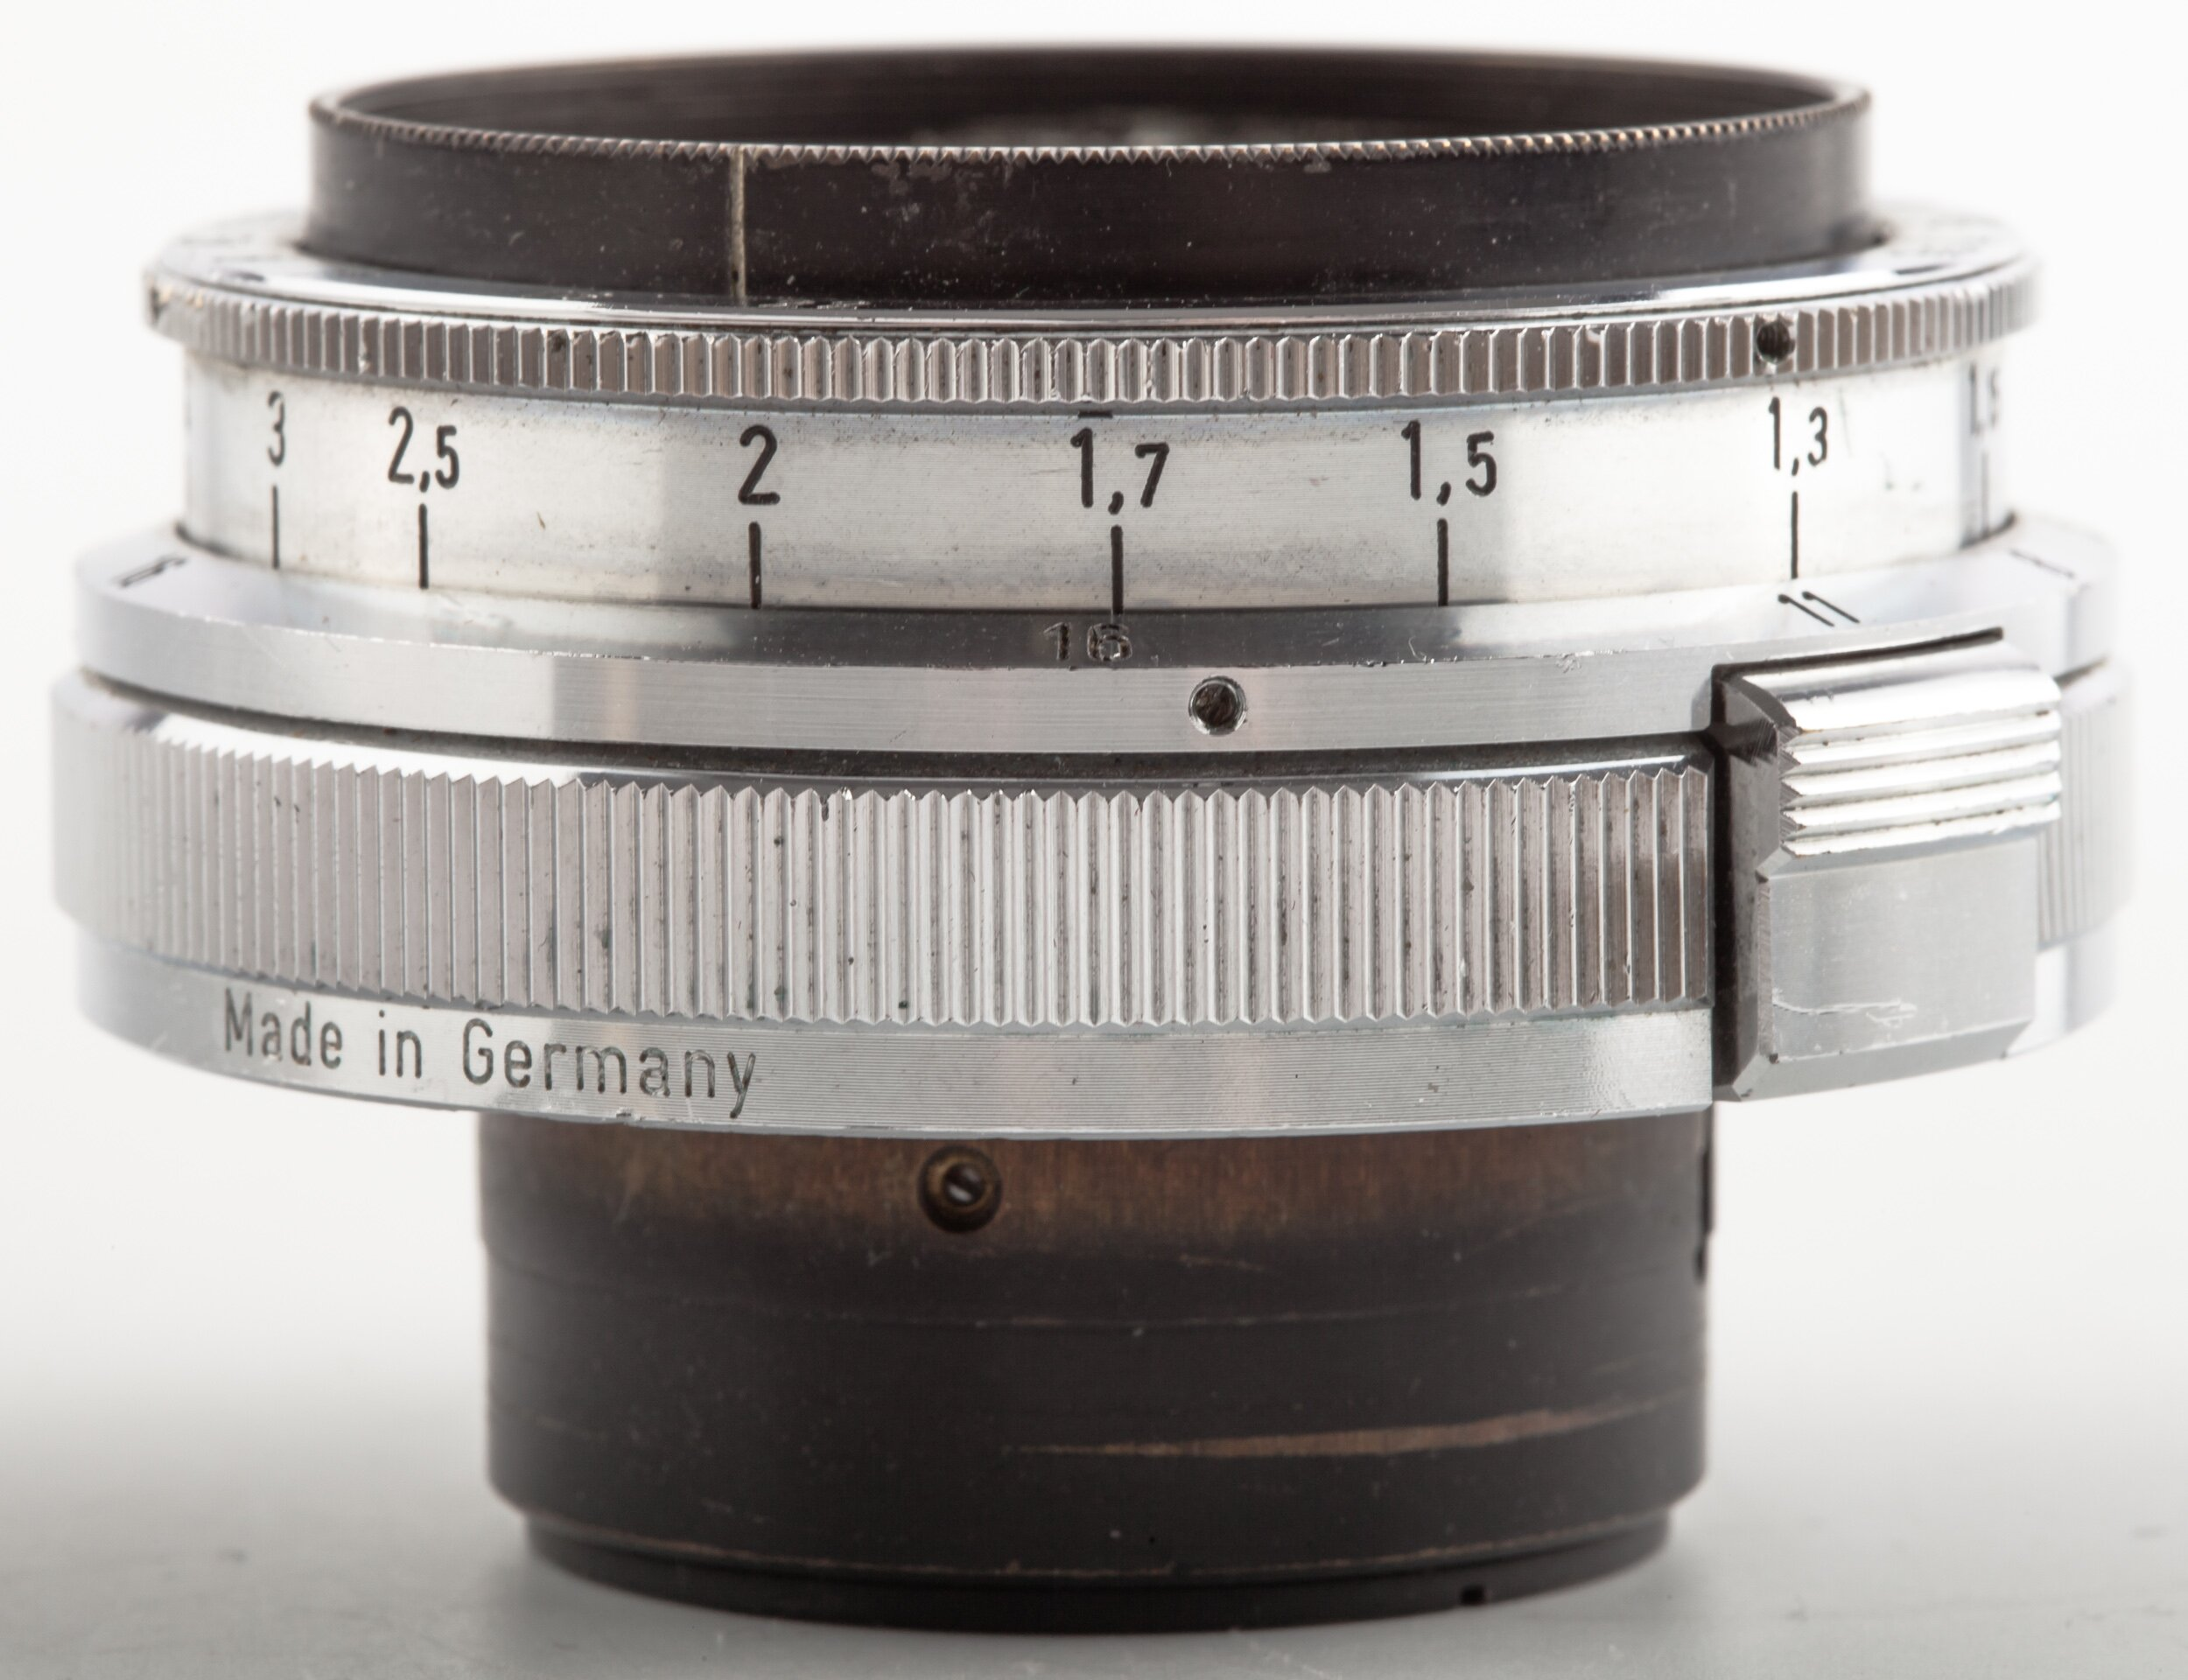 Carl Zeiss Planar 3,5/35mm Contax RF Made in Germany